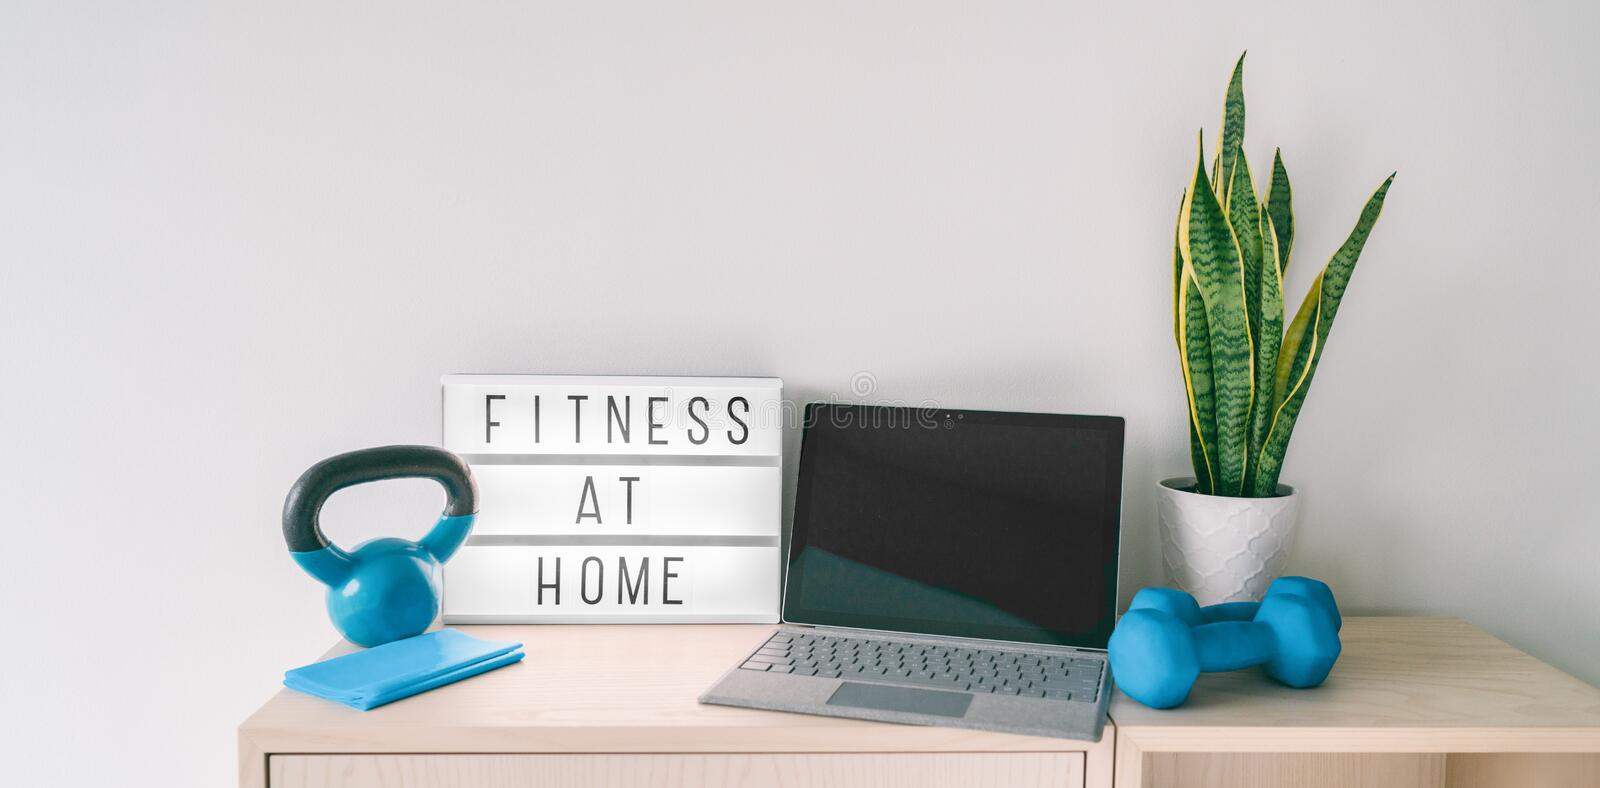 Fitness at home online exercise class on computer laptop with training weights and resistance band. Coronavirus COVID-19 stock image